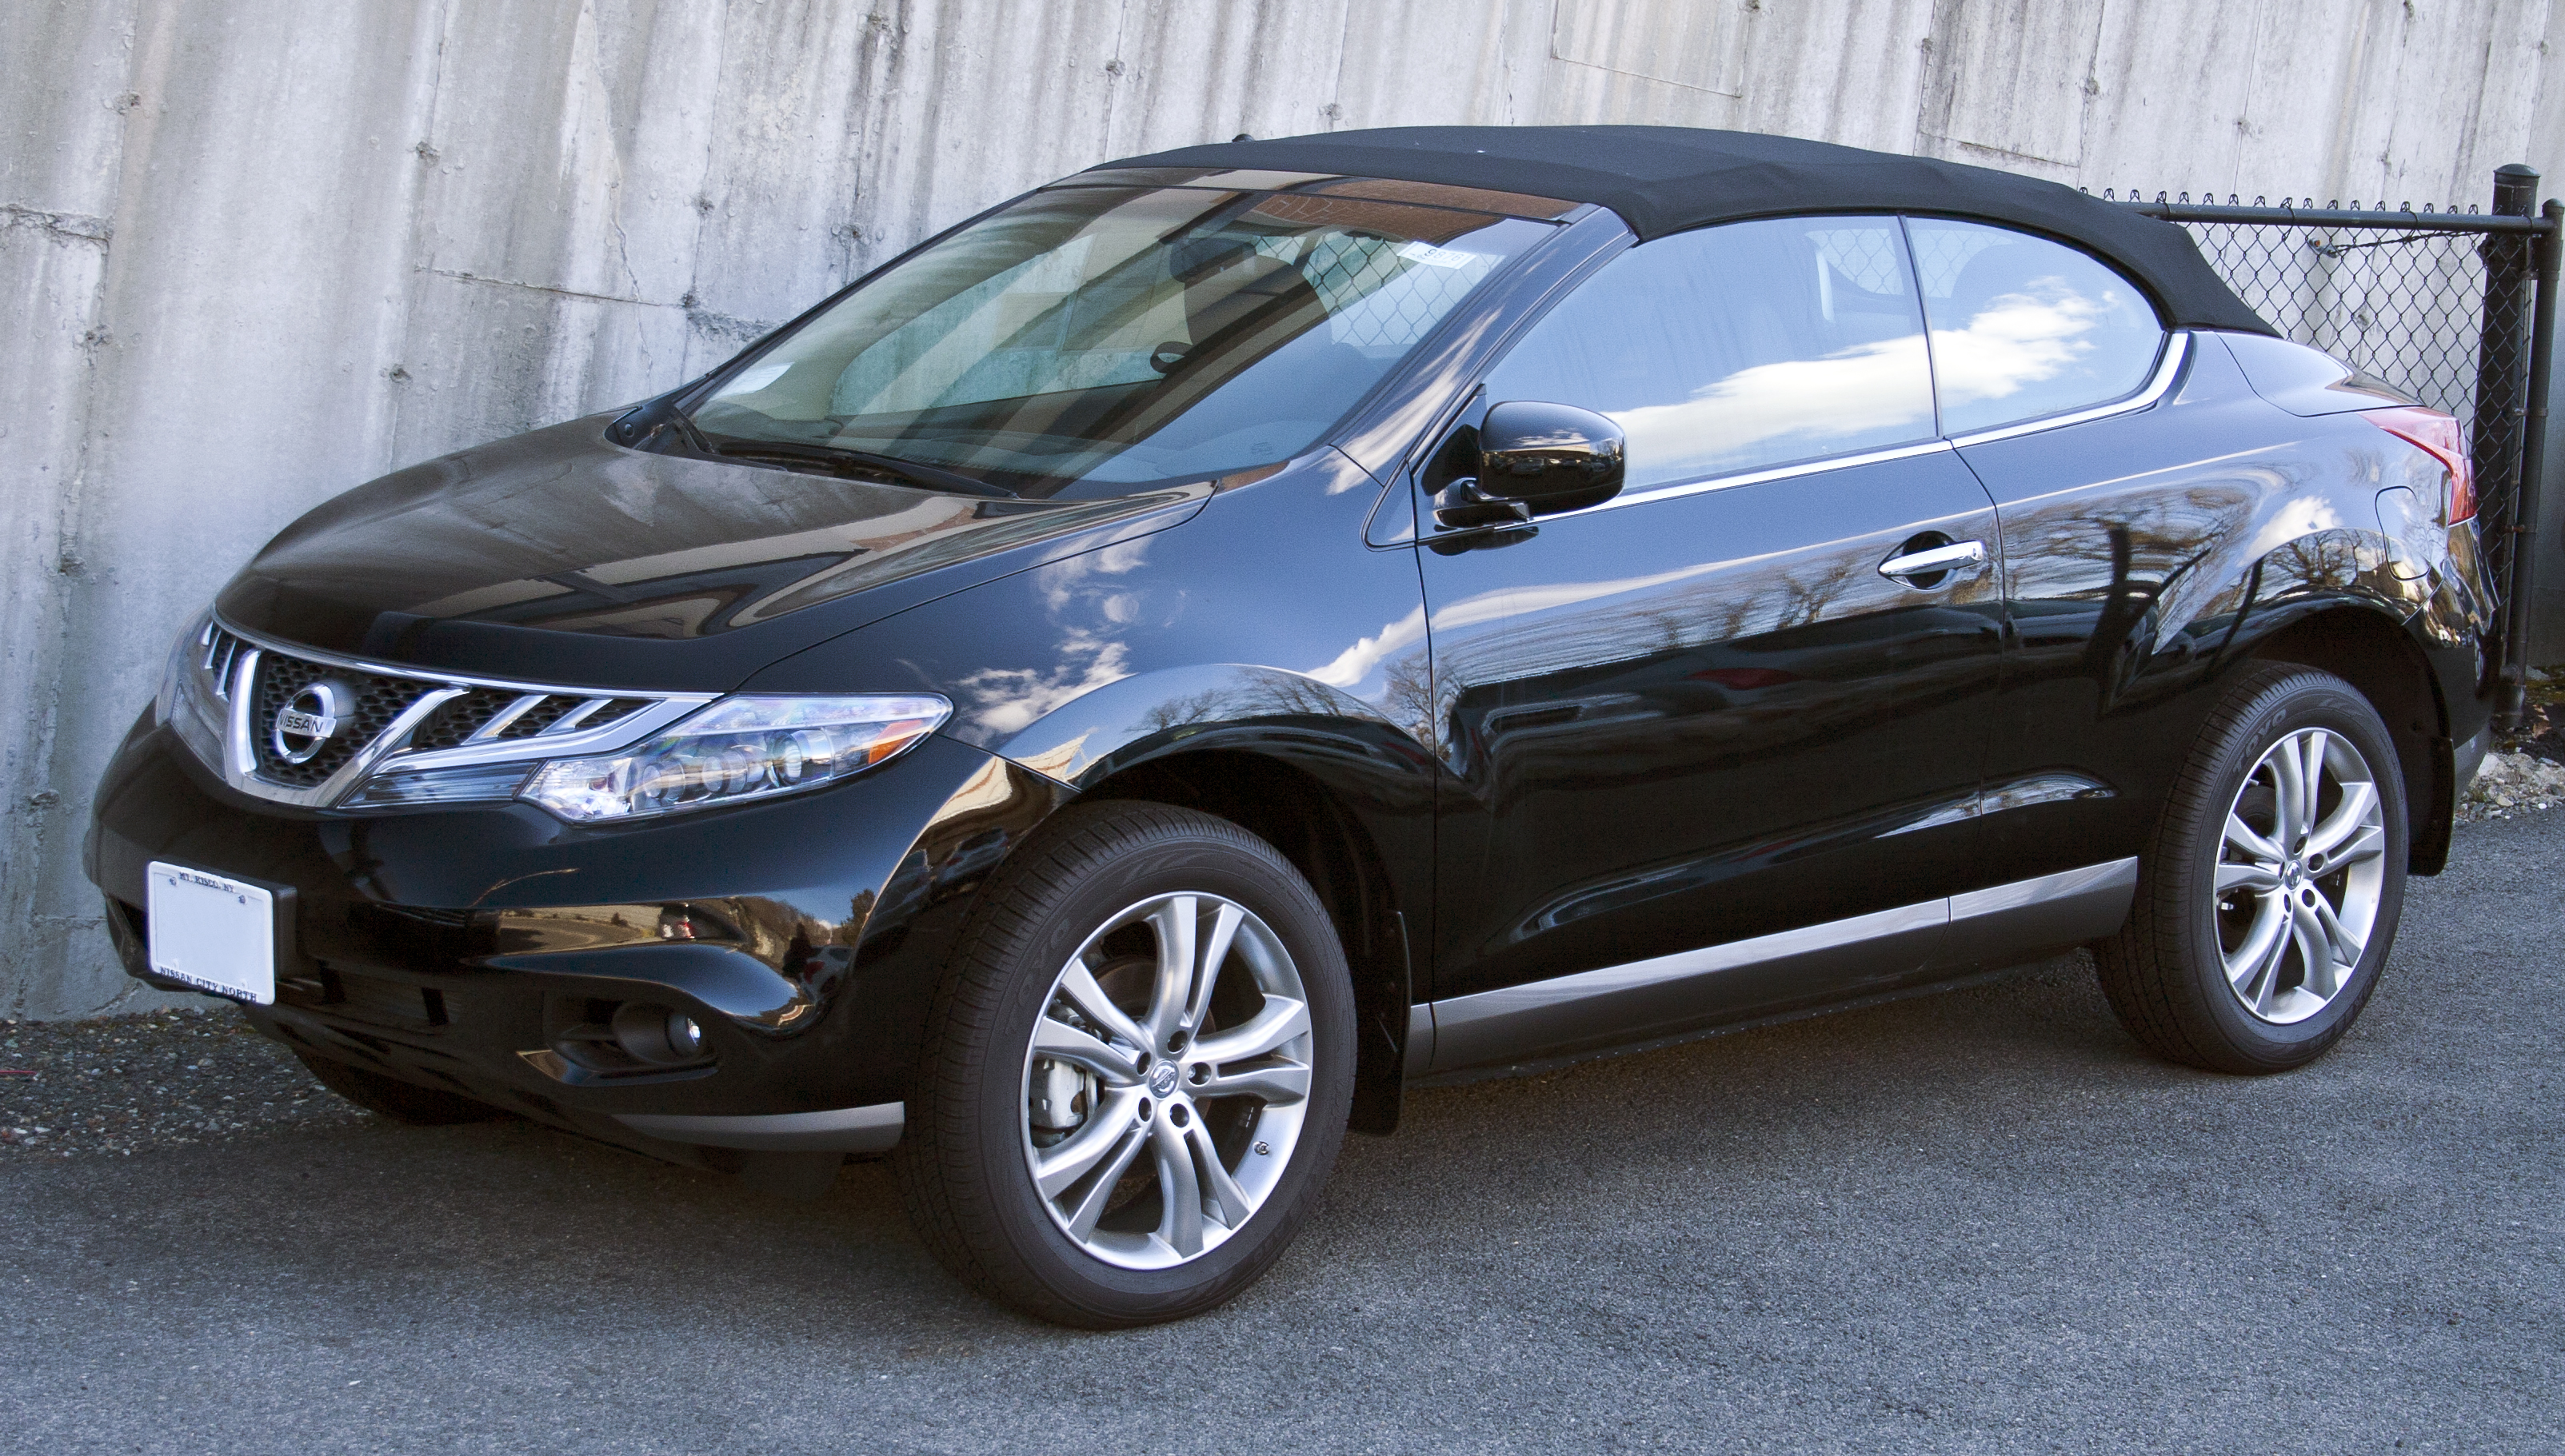 File:2012 Nissan Murano CrossCabriolet Top Up